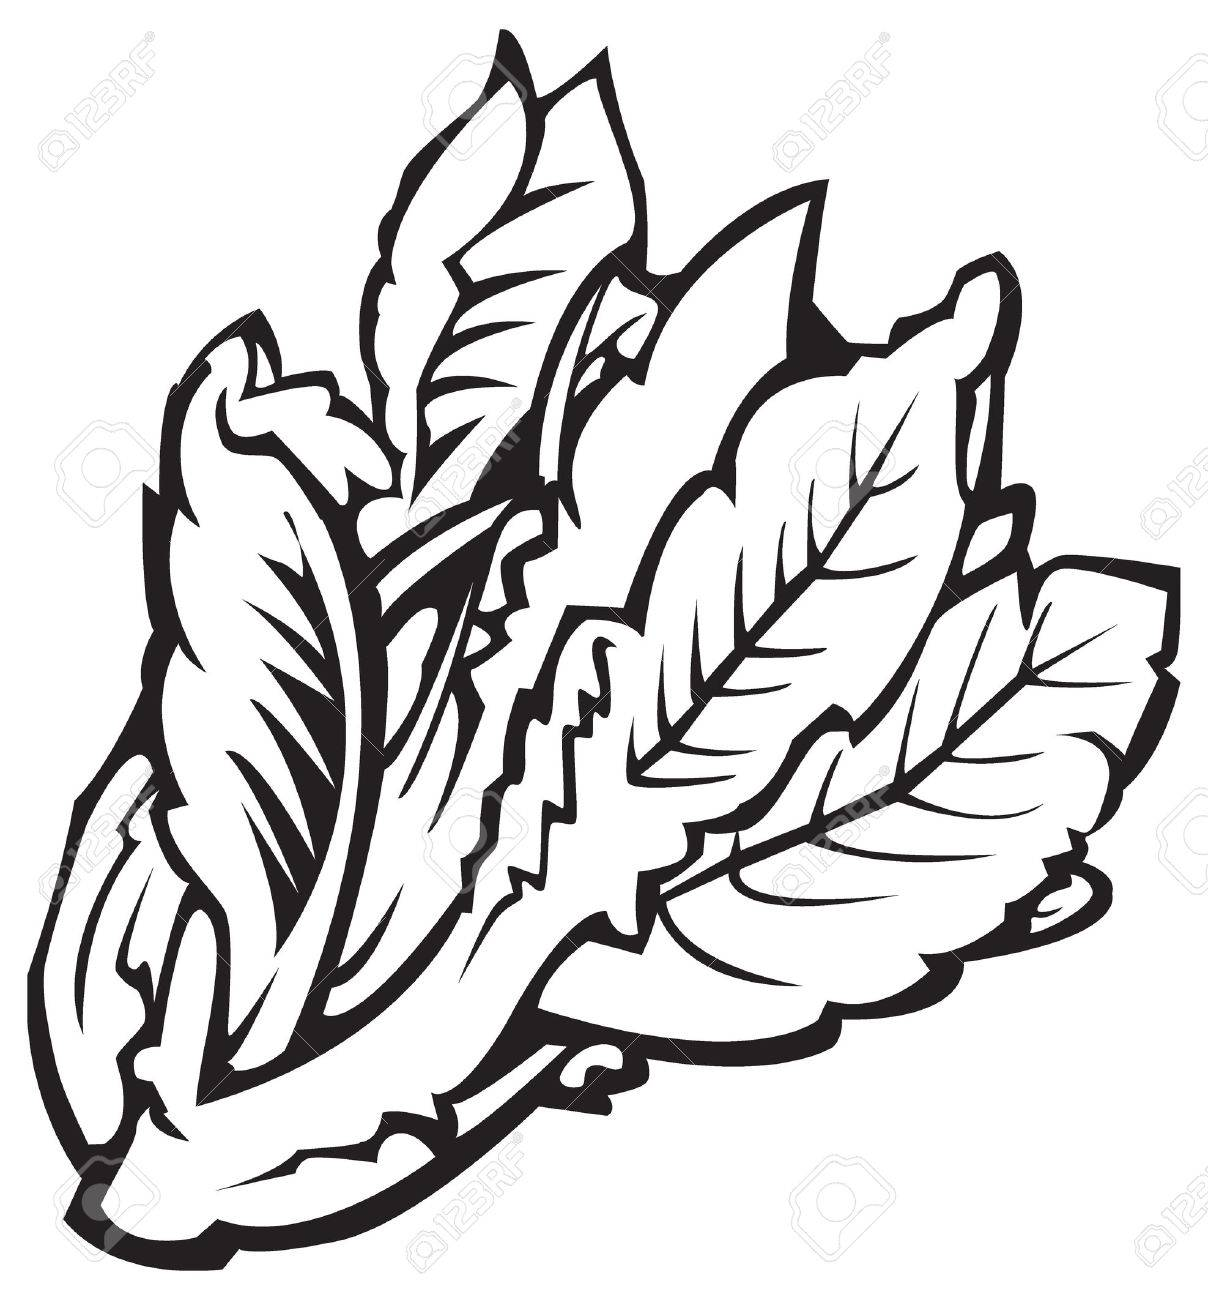 Lettuce Leaf Drawing at GetDrawings.com | Free for personal use ...